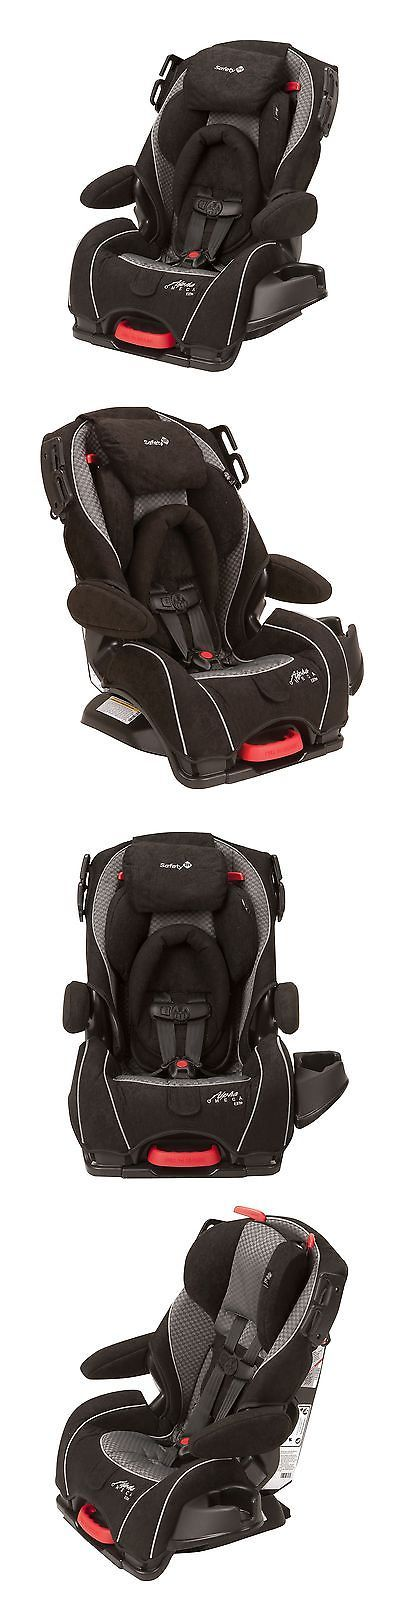 Convertible Car Seat 5 40lbs 66695 Safety 1St Alpha Omega Elite 3 In 1 Cumberland